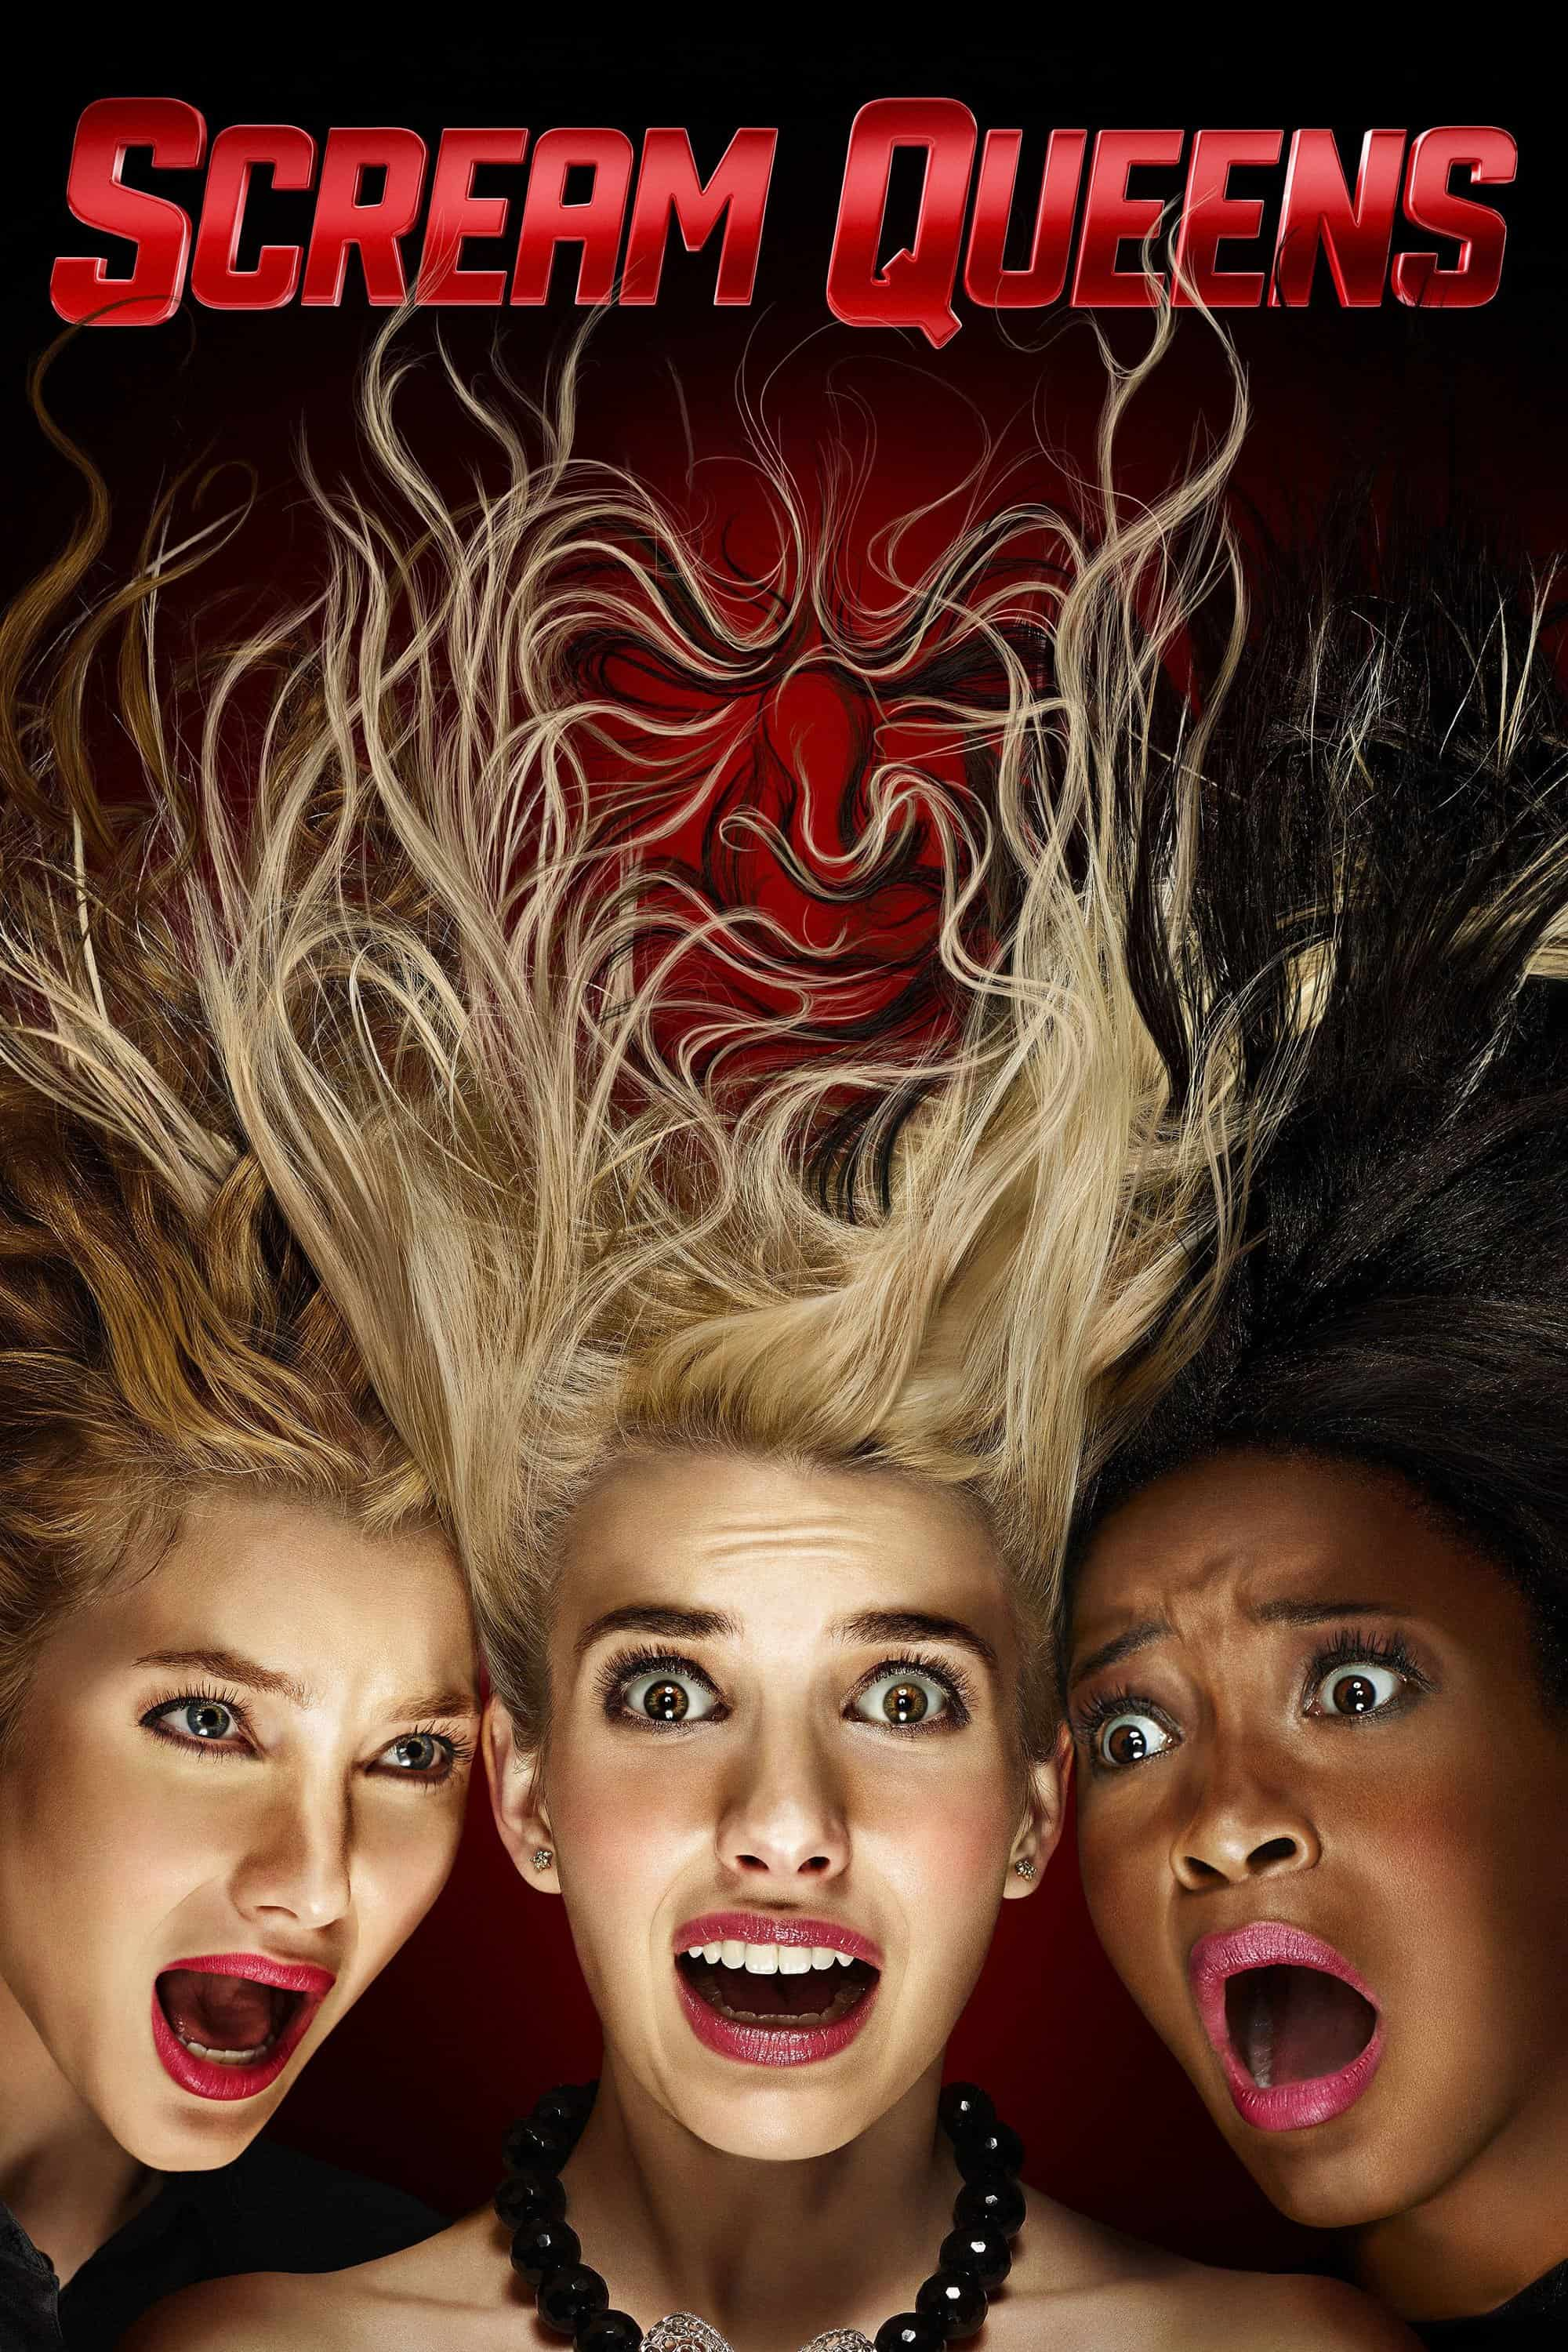 Scream Queens, 2015